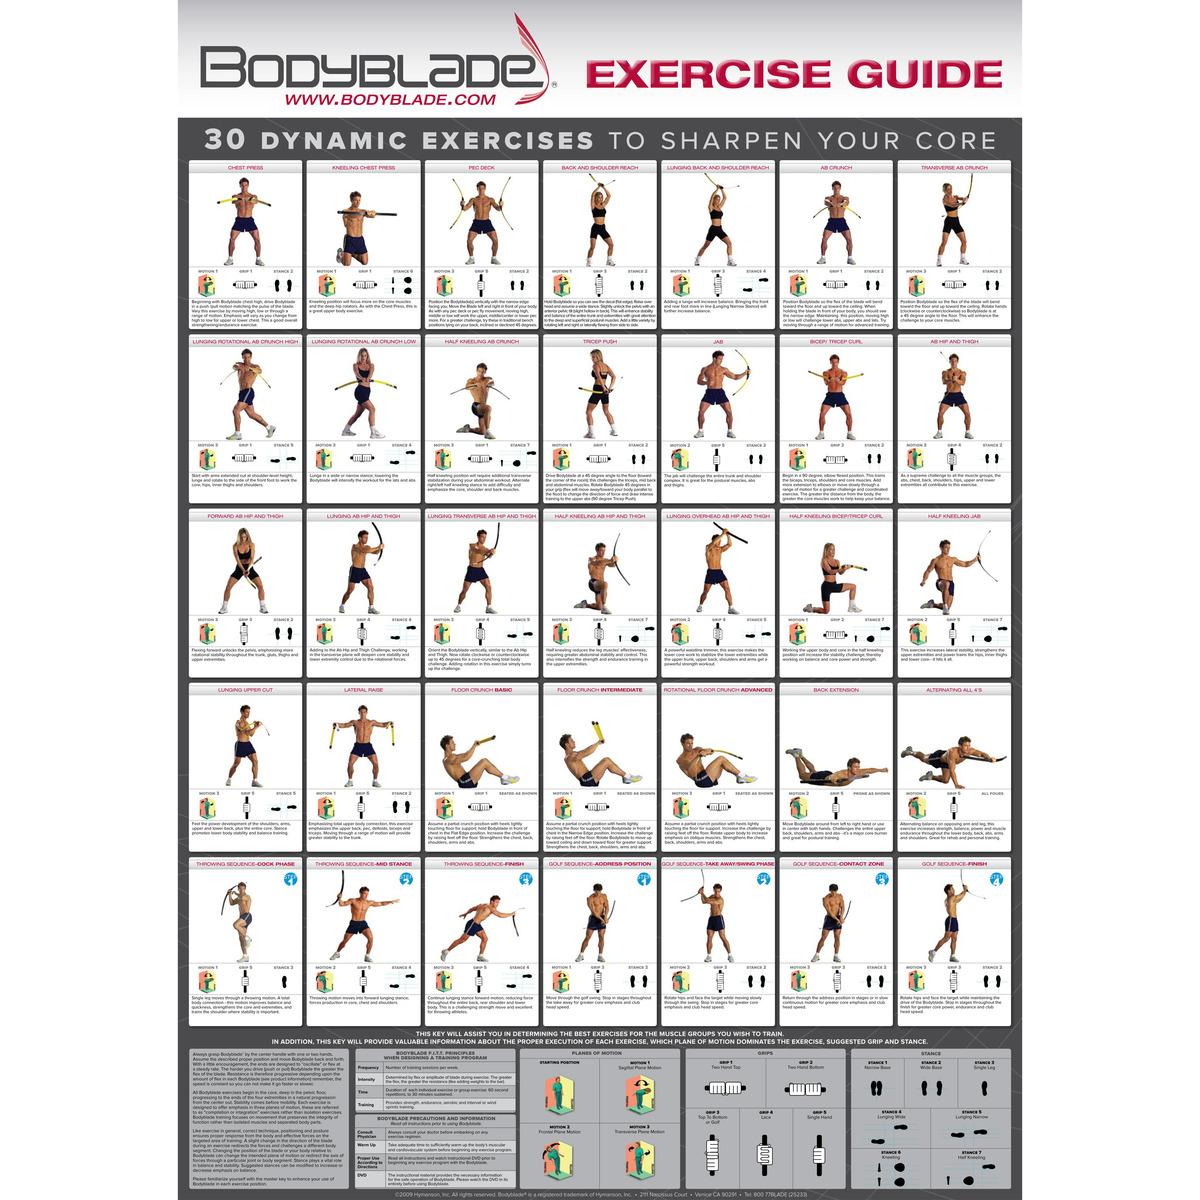 Dumbbell Workout Chart Pdf Workouts 15 Minute Full Body Burner At Home For Men Women